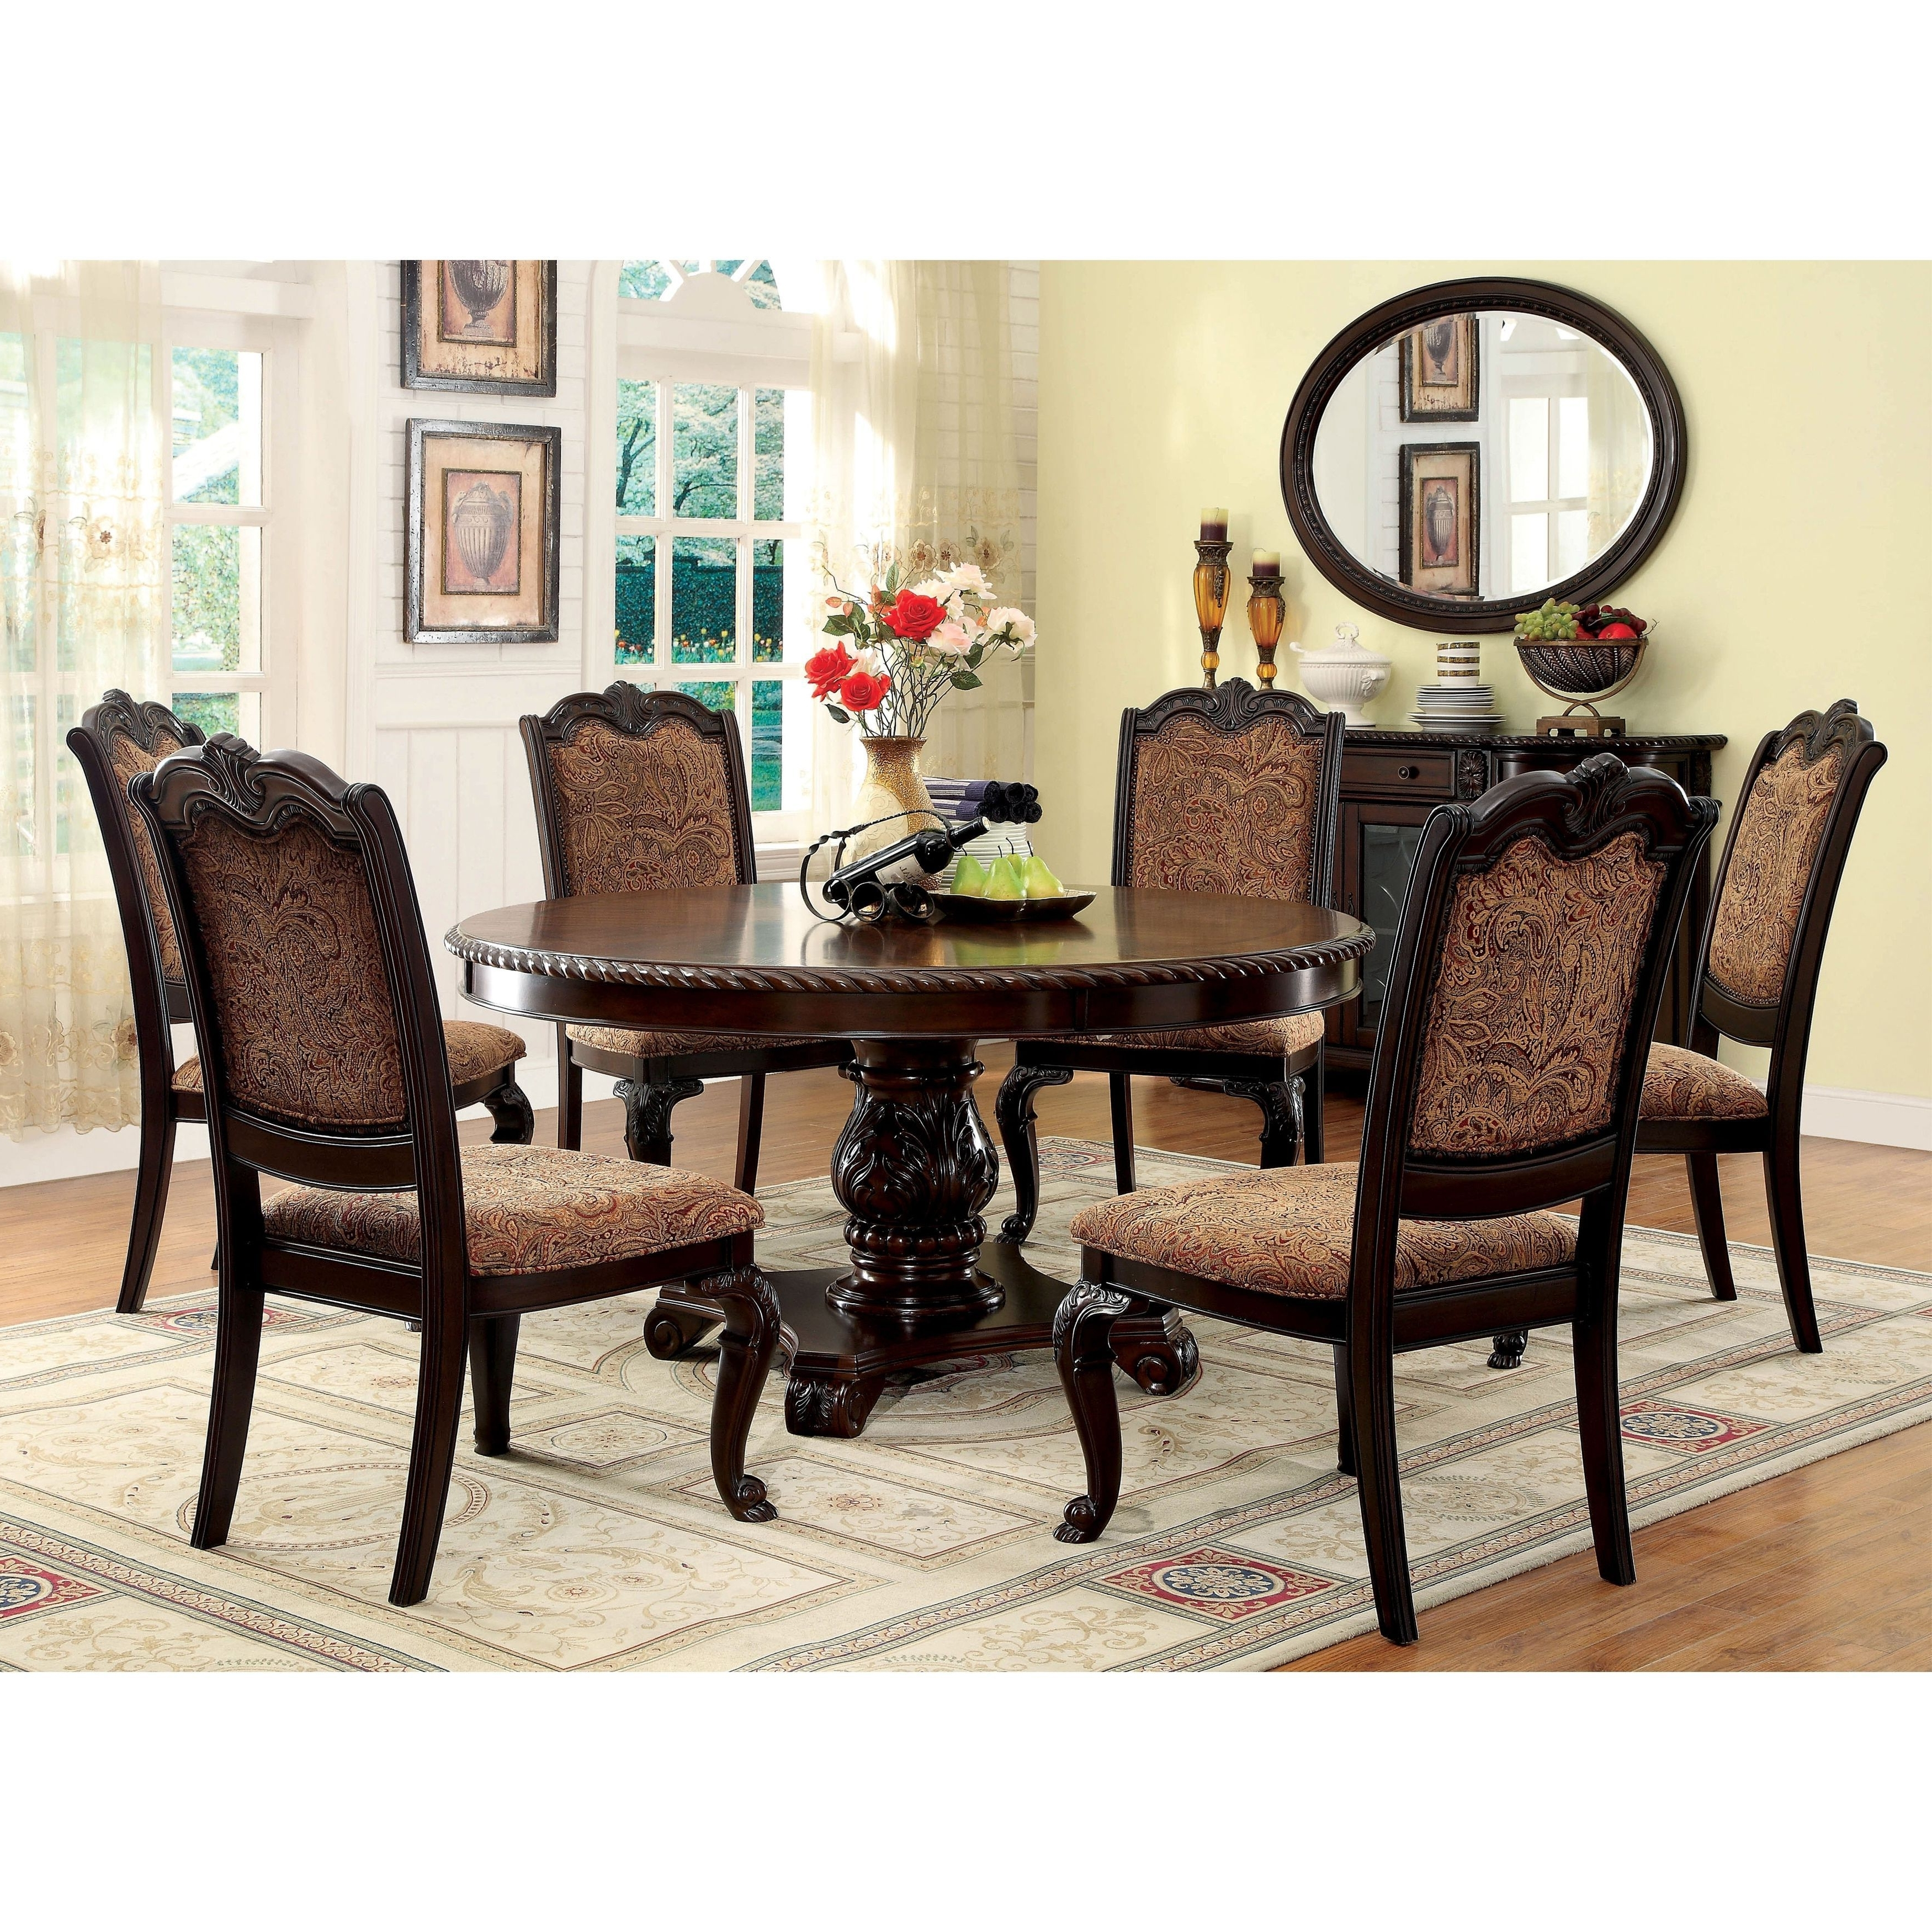 Preferred Norwood 7 Piece Rectangular Extension Dining Sets With Bench & Uph Side Chairs With Furniture Of America Oskarre Iii Brown Cherry (Red) 7 Piece Formal (Gallery 9 of 25)